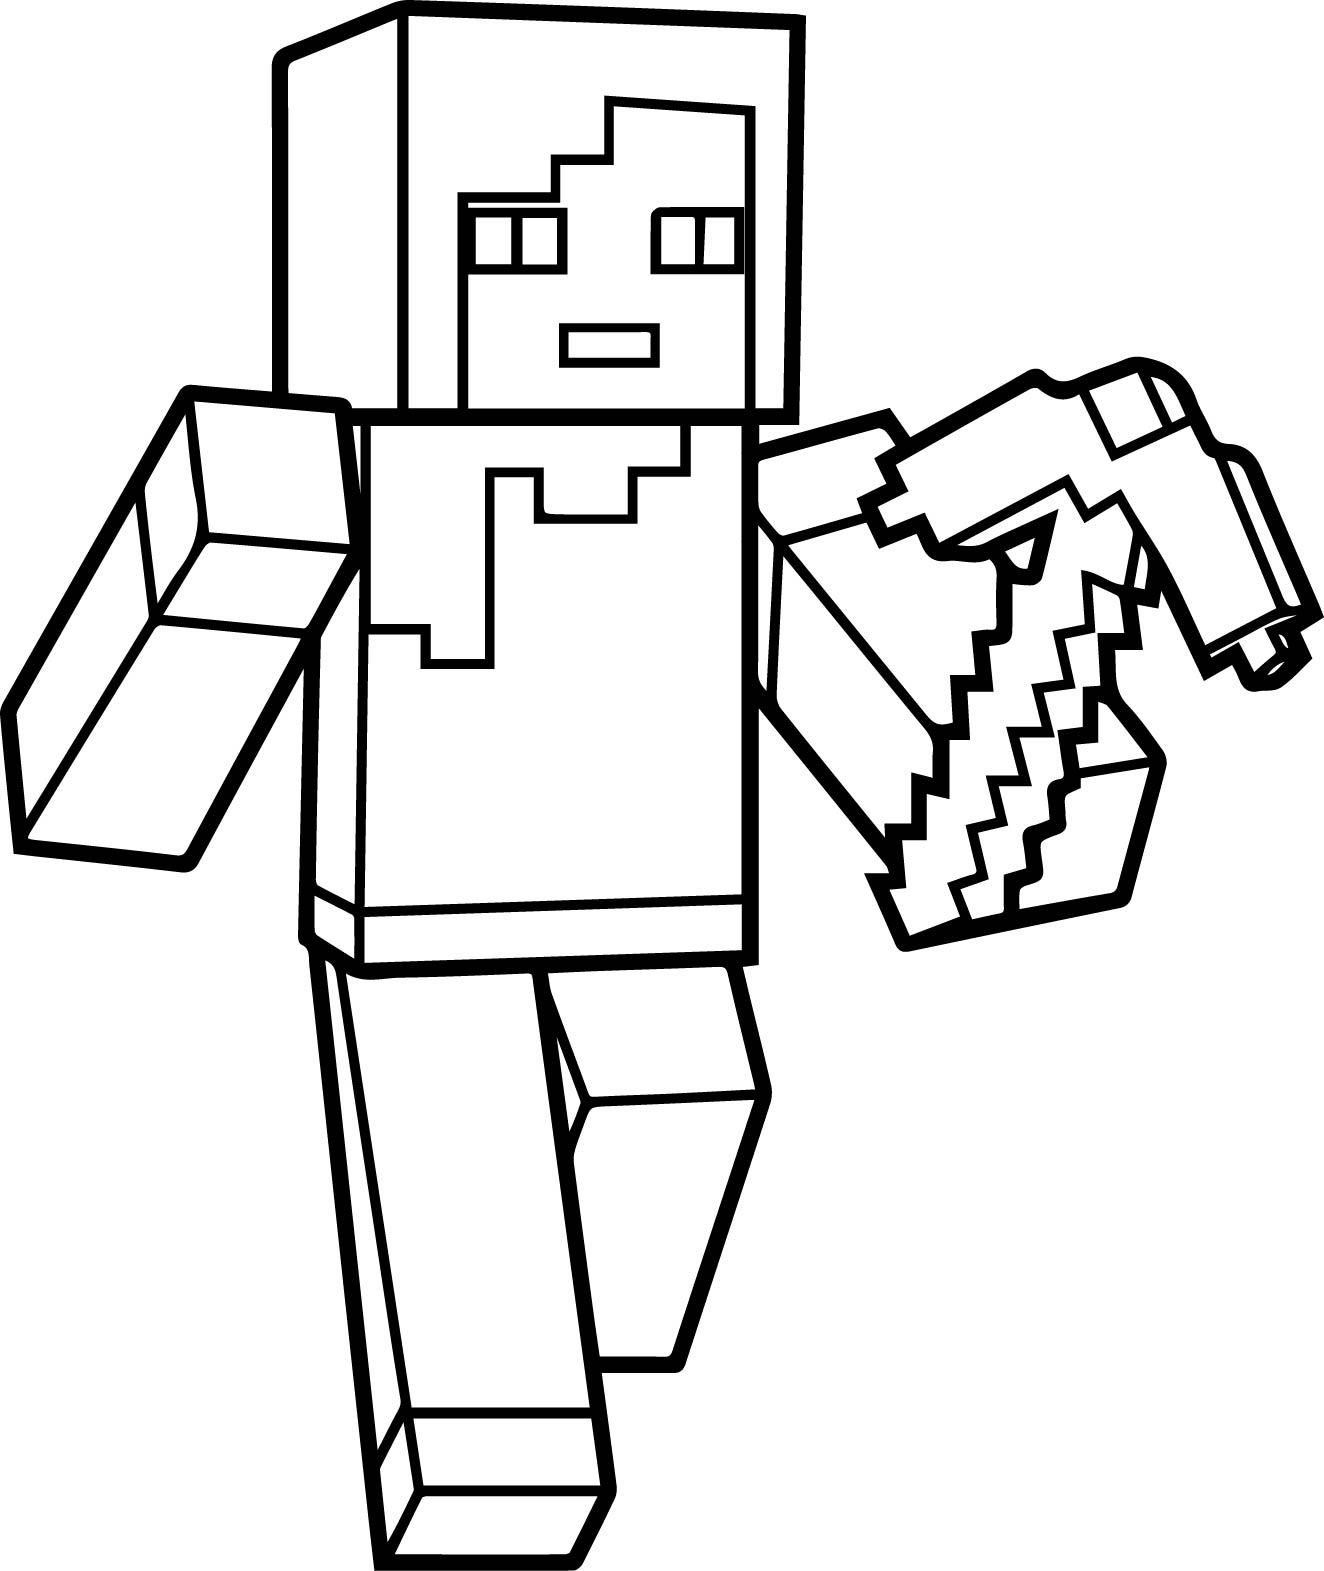 1324x1571 Minecraft Coloring Page Fresh Minecraft Coloring Pages Best